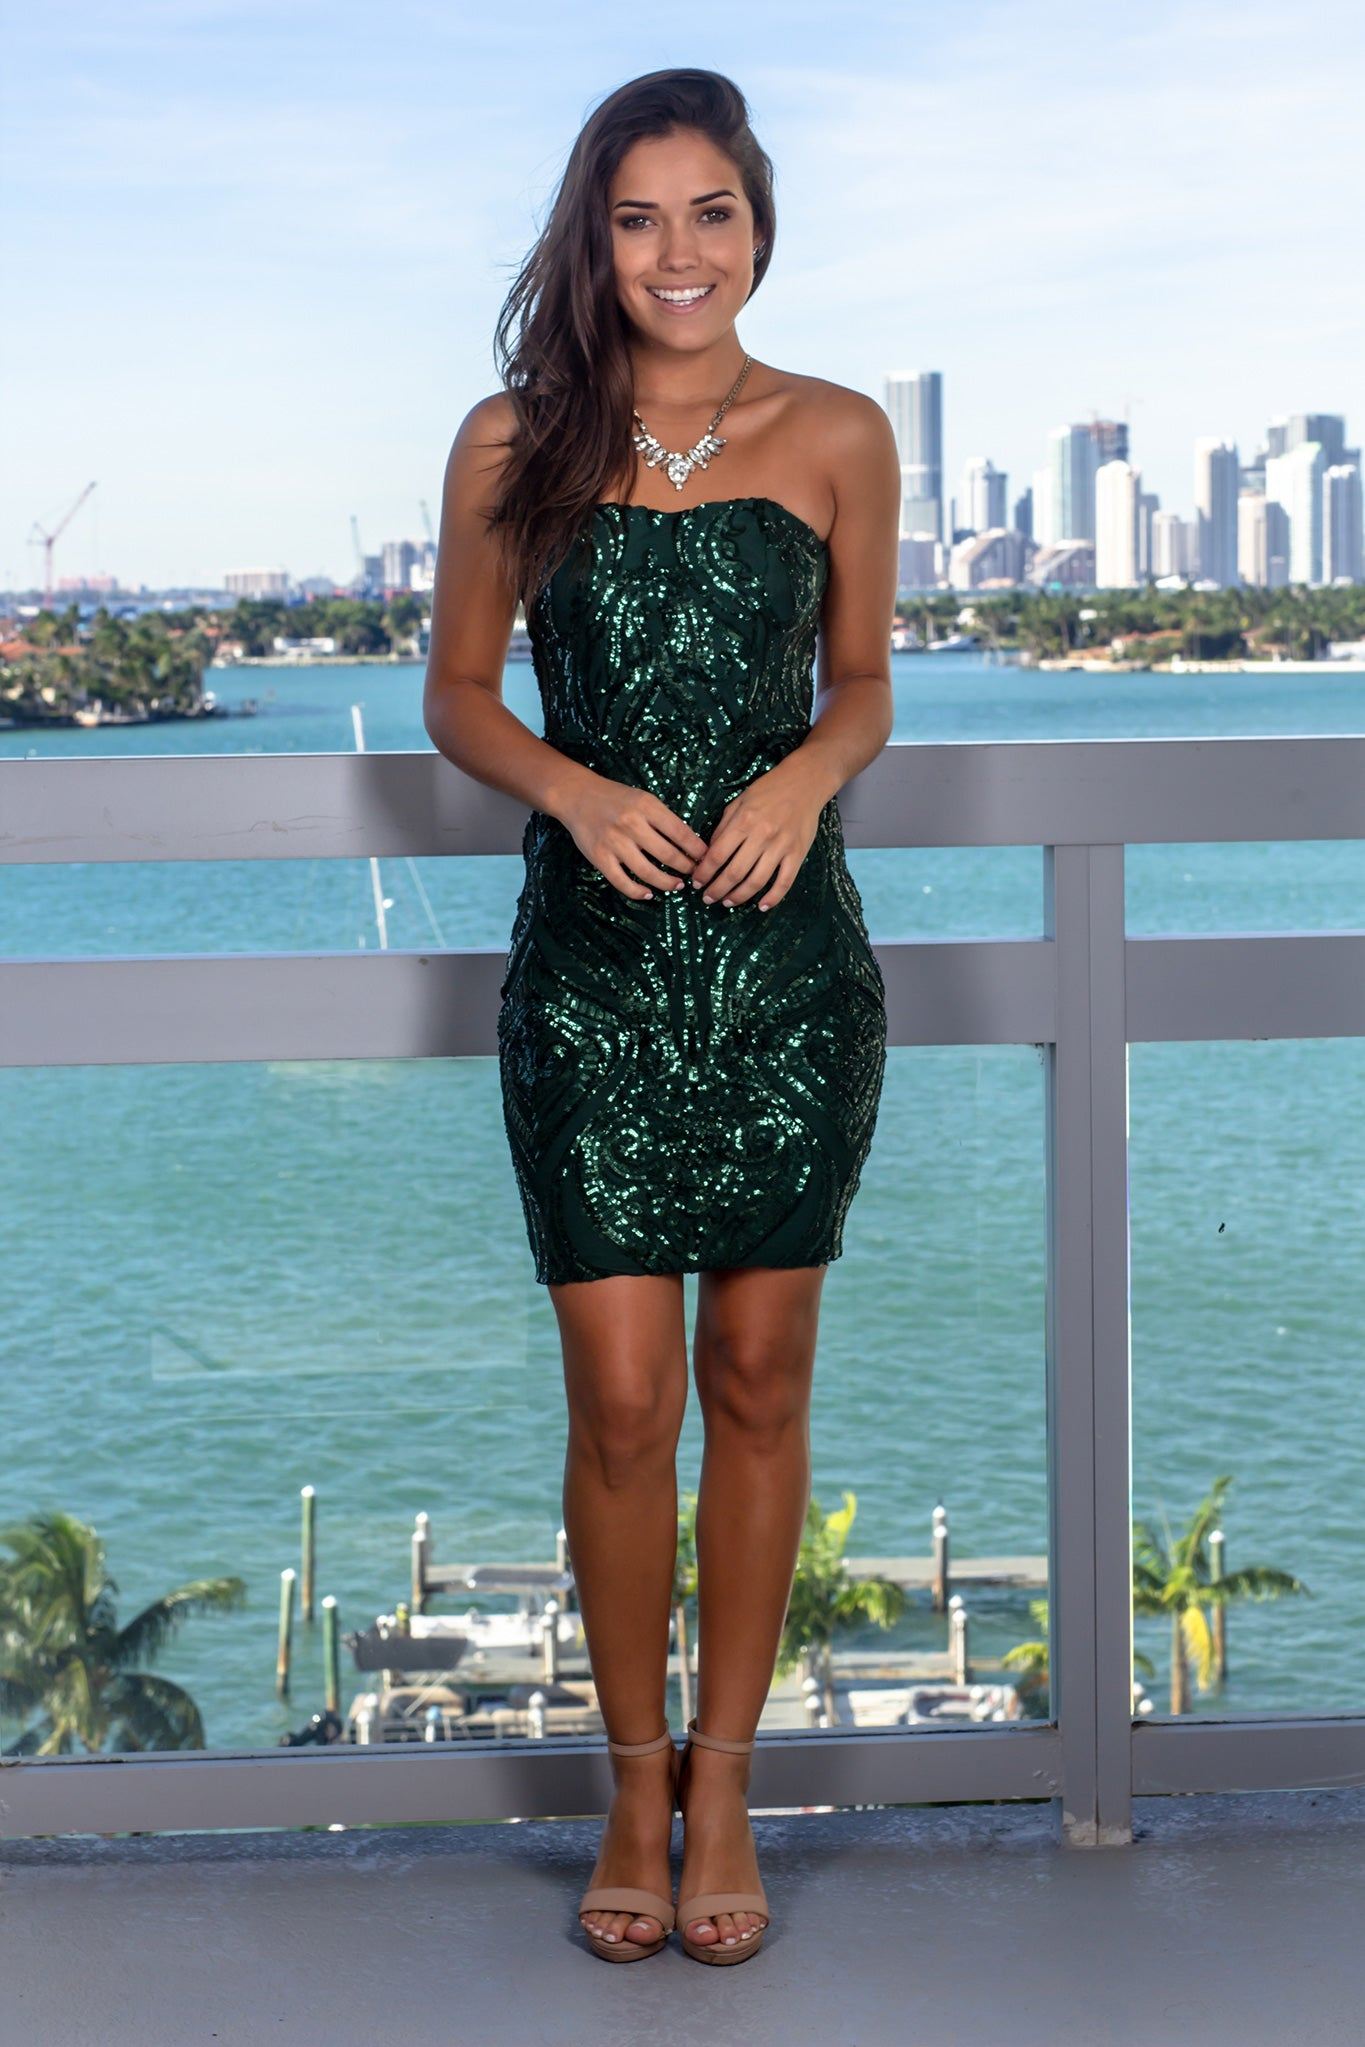 Hunter Green Strapless Sequin Short Dress